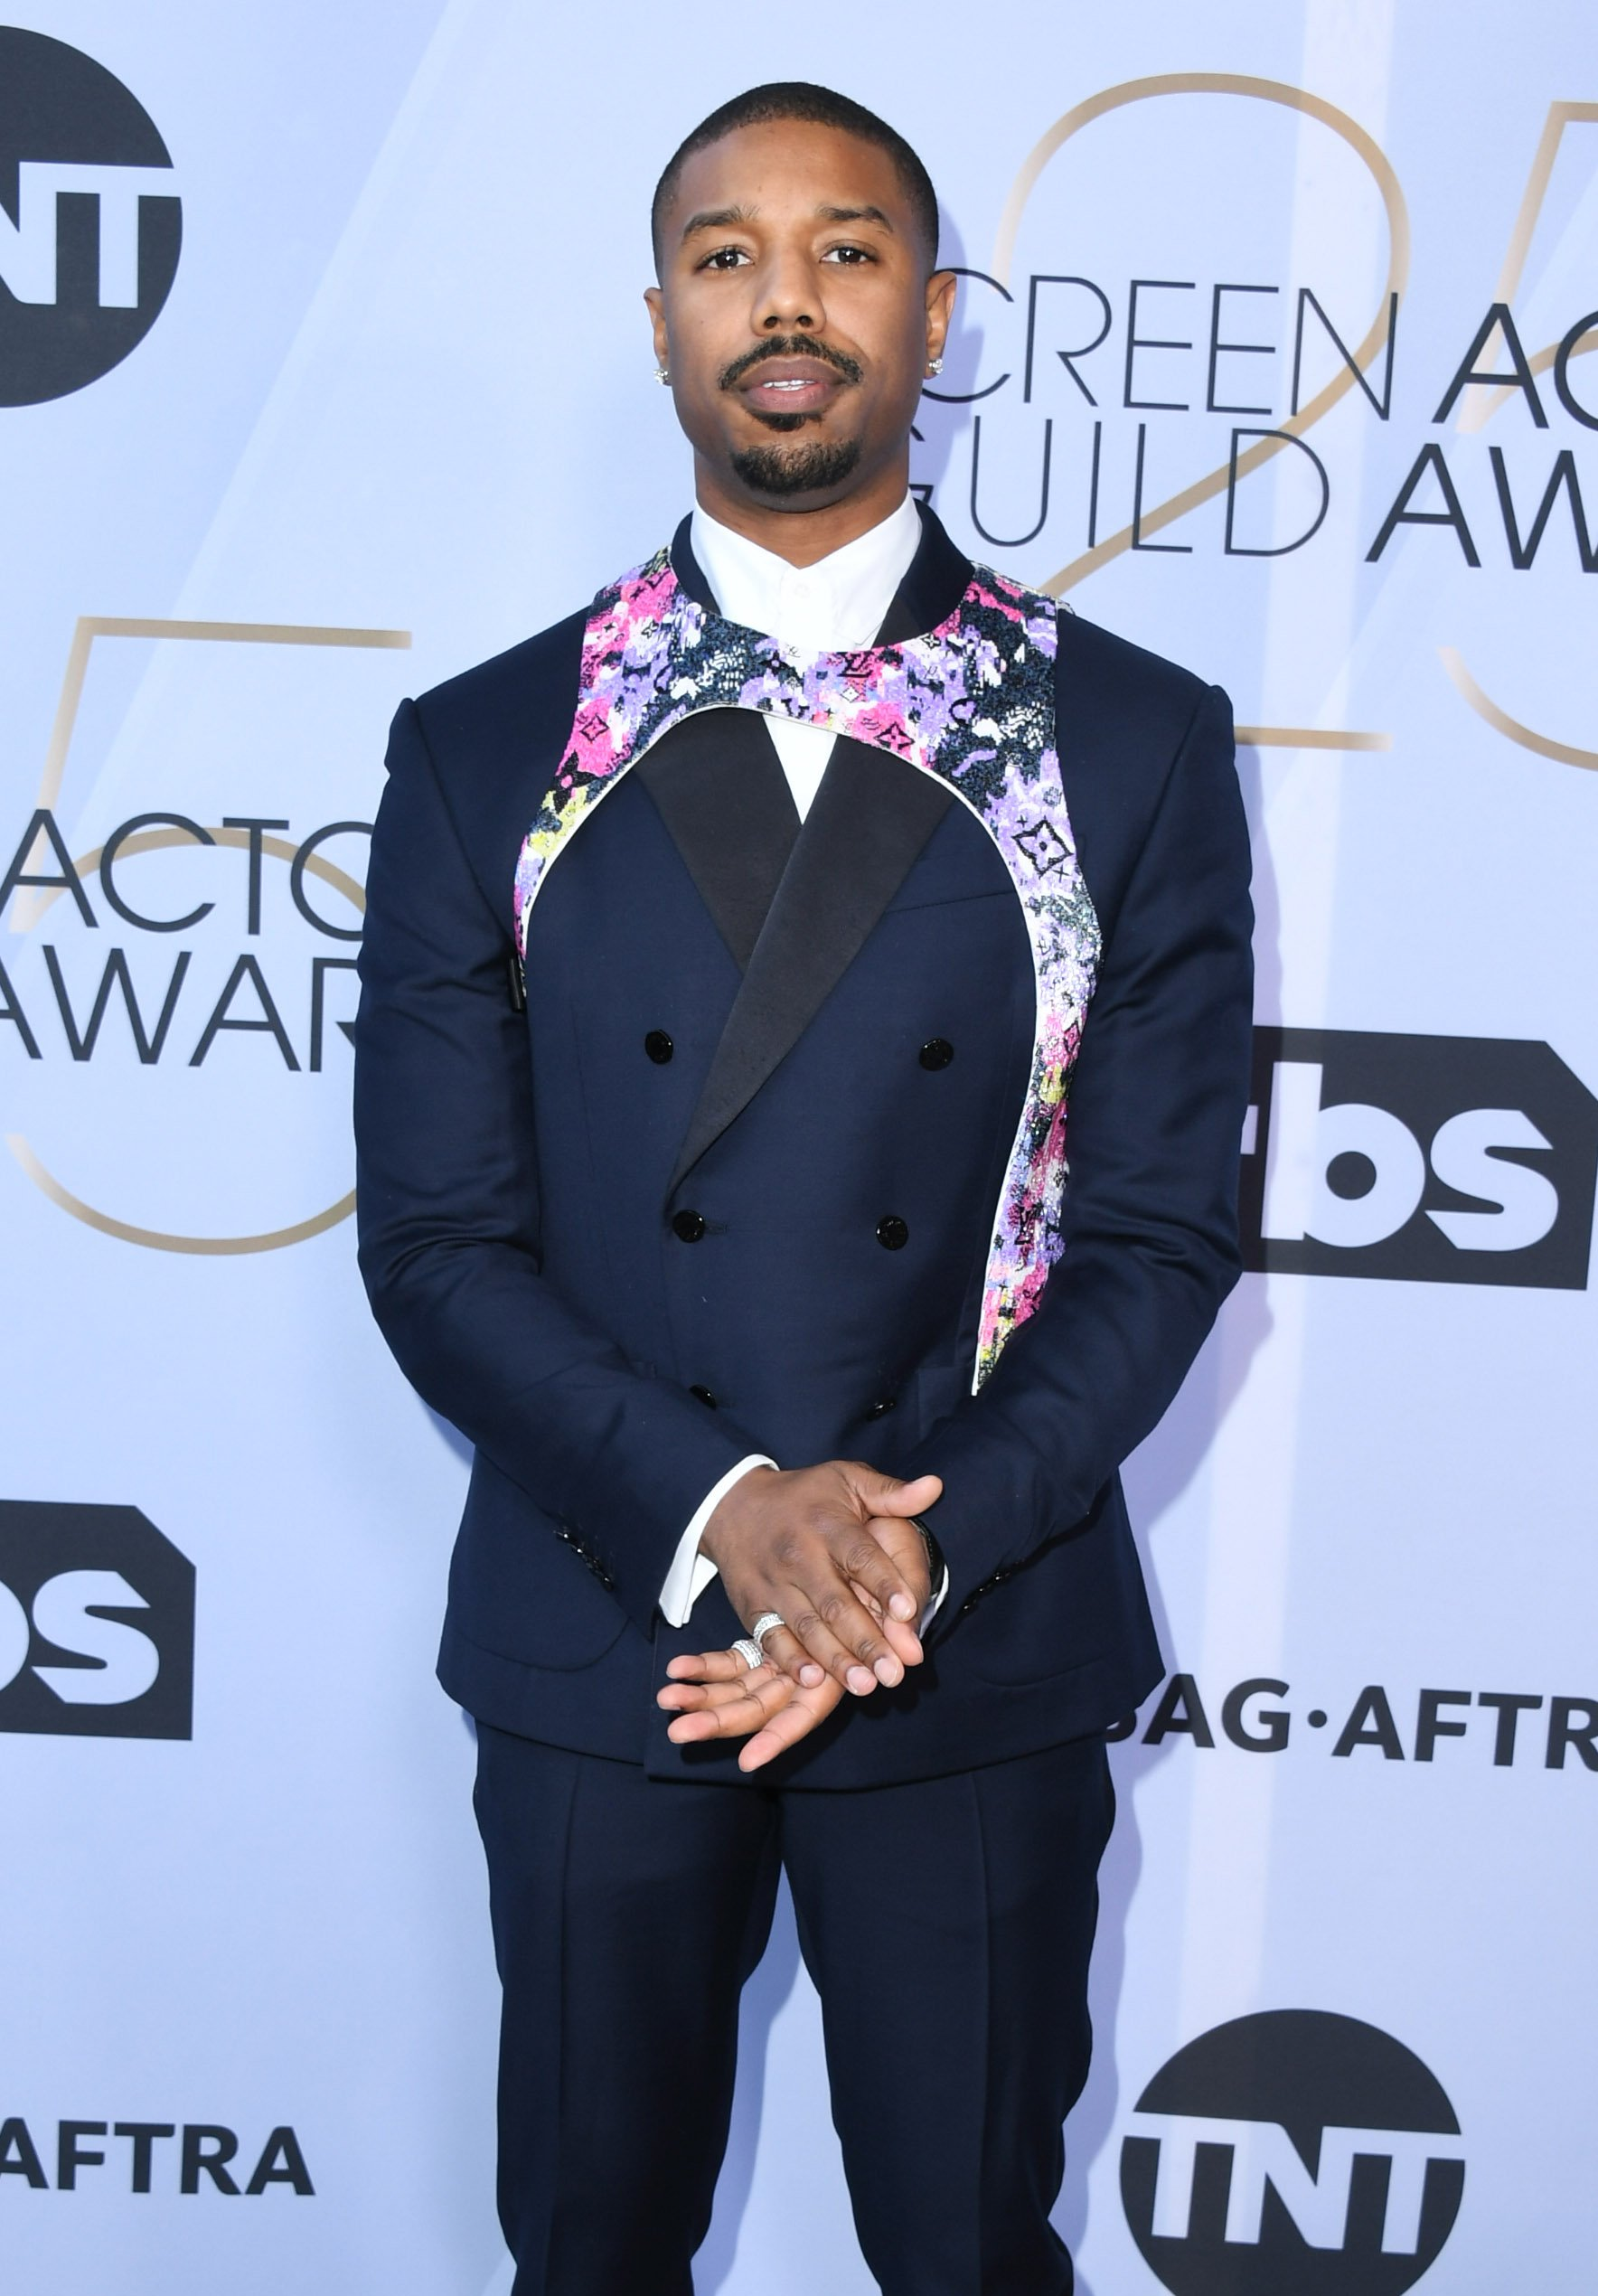 Michael B. Jordan at the 25th Annual Screen Actors Guild Awards in Los Angeles, California on Jan. 27. | Photo: Getty Images.